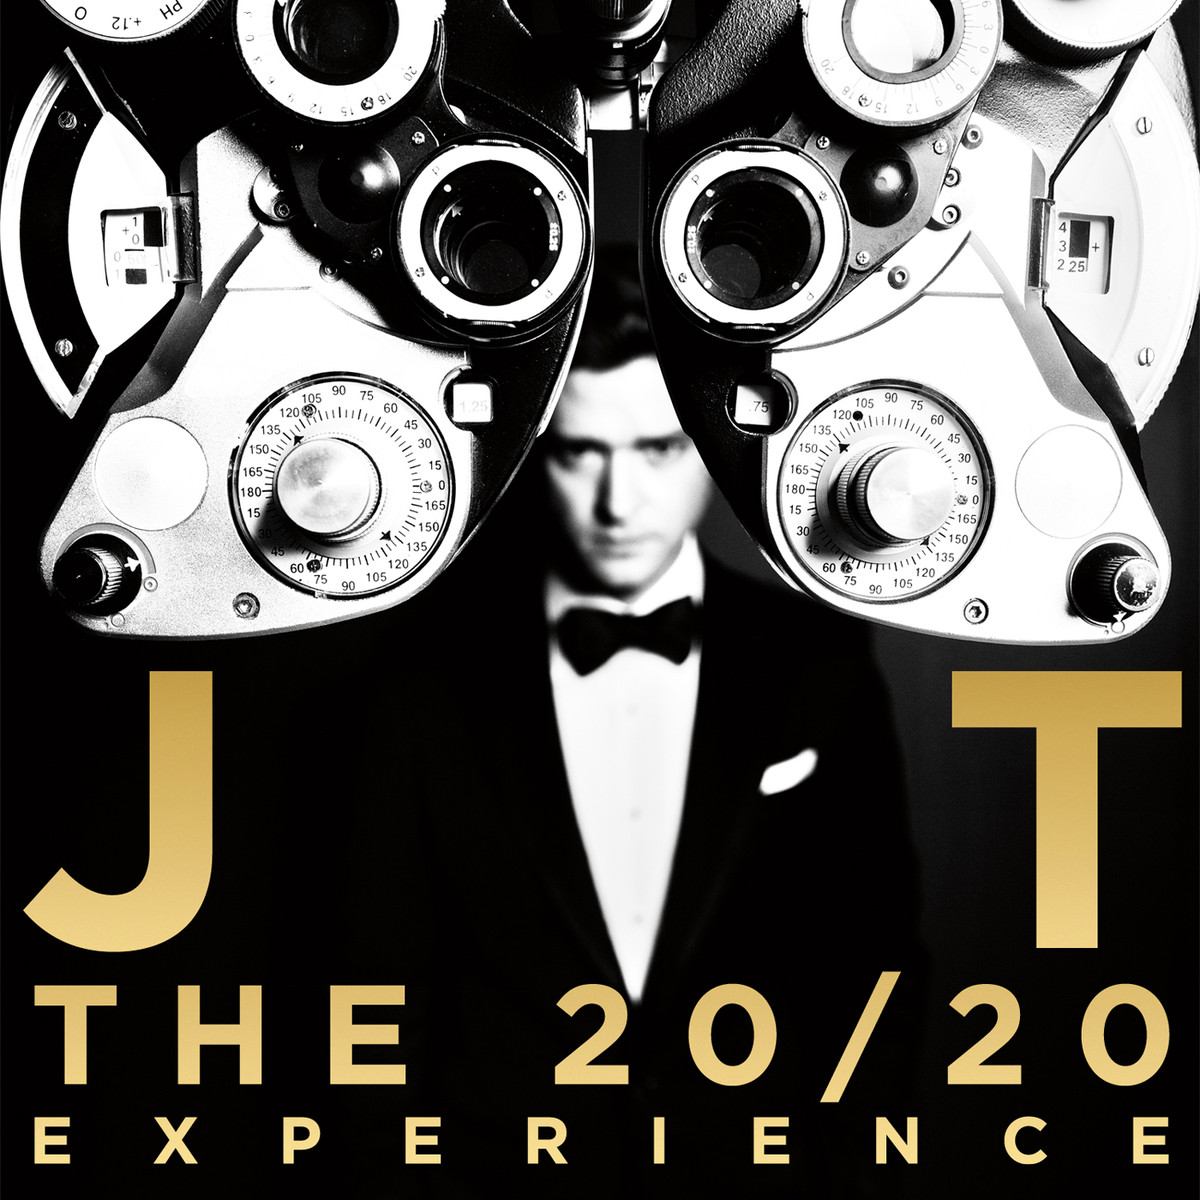 http://4.bp.blogspot.com/-ehTKSDiwe8c/UUprvC9yw2I/AAAAAAAAAgs/5Dos0EowSE4/s1600/Justin-Timberlake-The-20_20-Experience-Deluxe-Version-2013-1200x1200.png